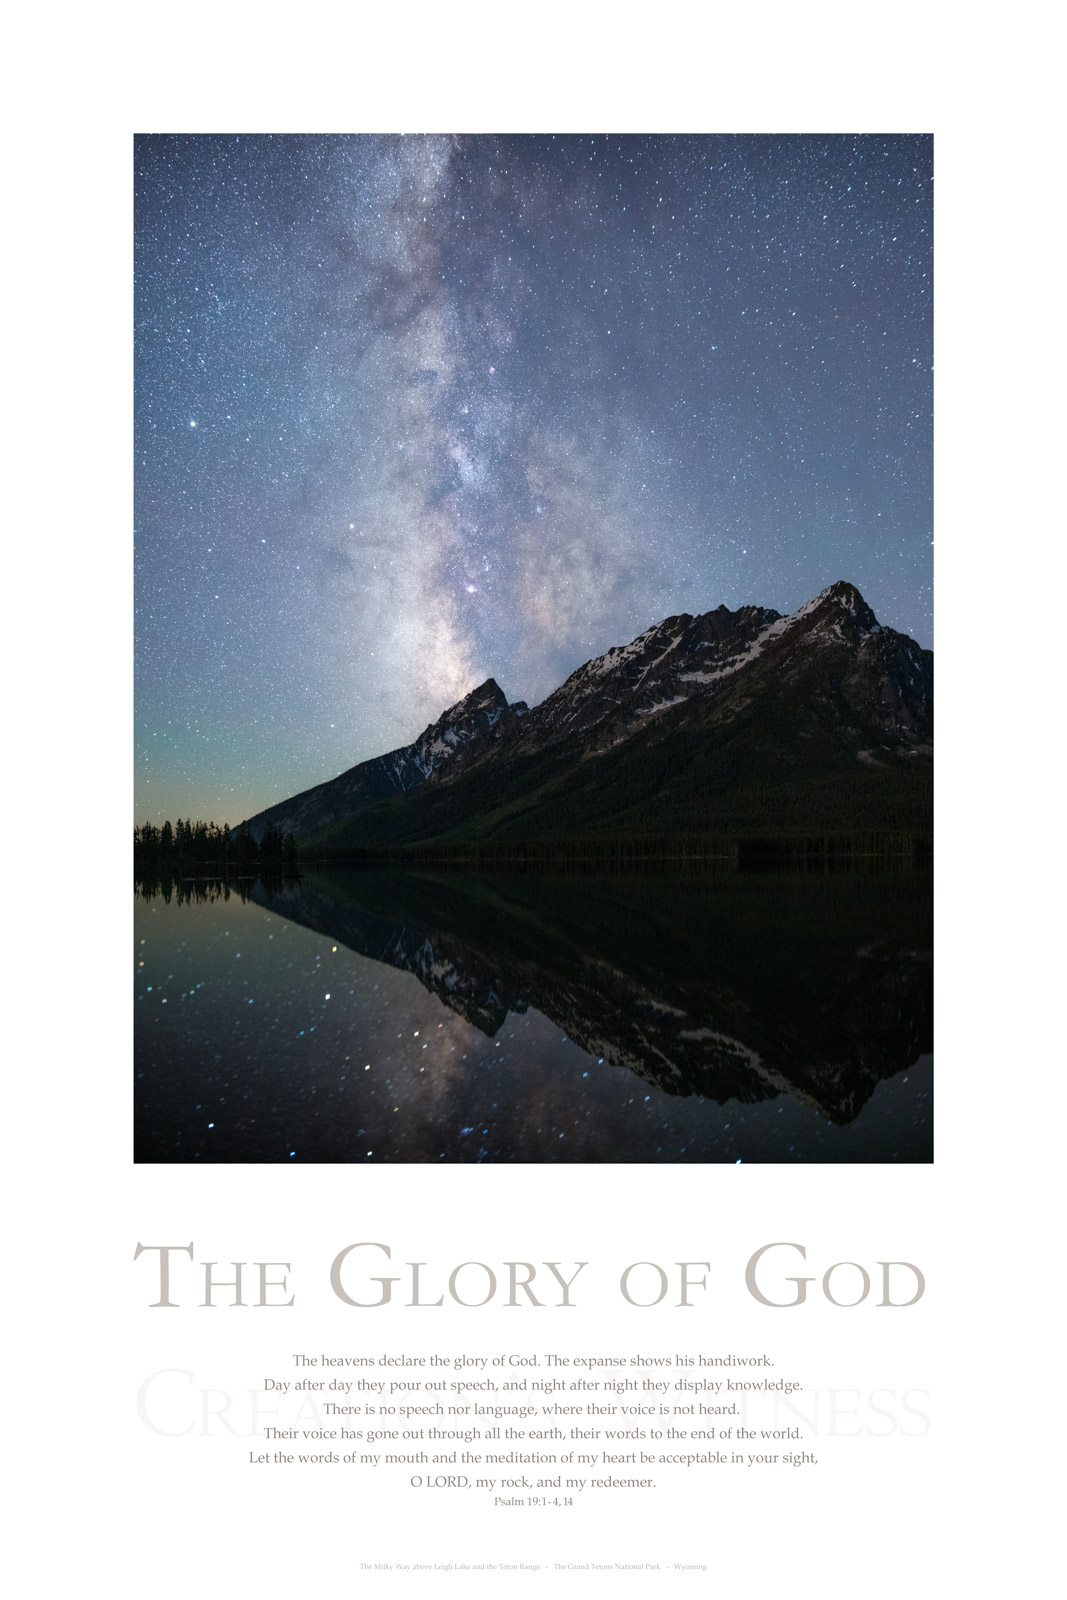 The heavens declare the glory of God. The expanse shows his handiwork. Day after day they pour out speech, and night after night...